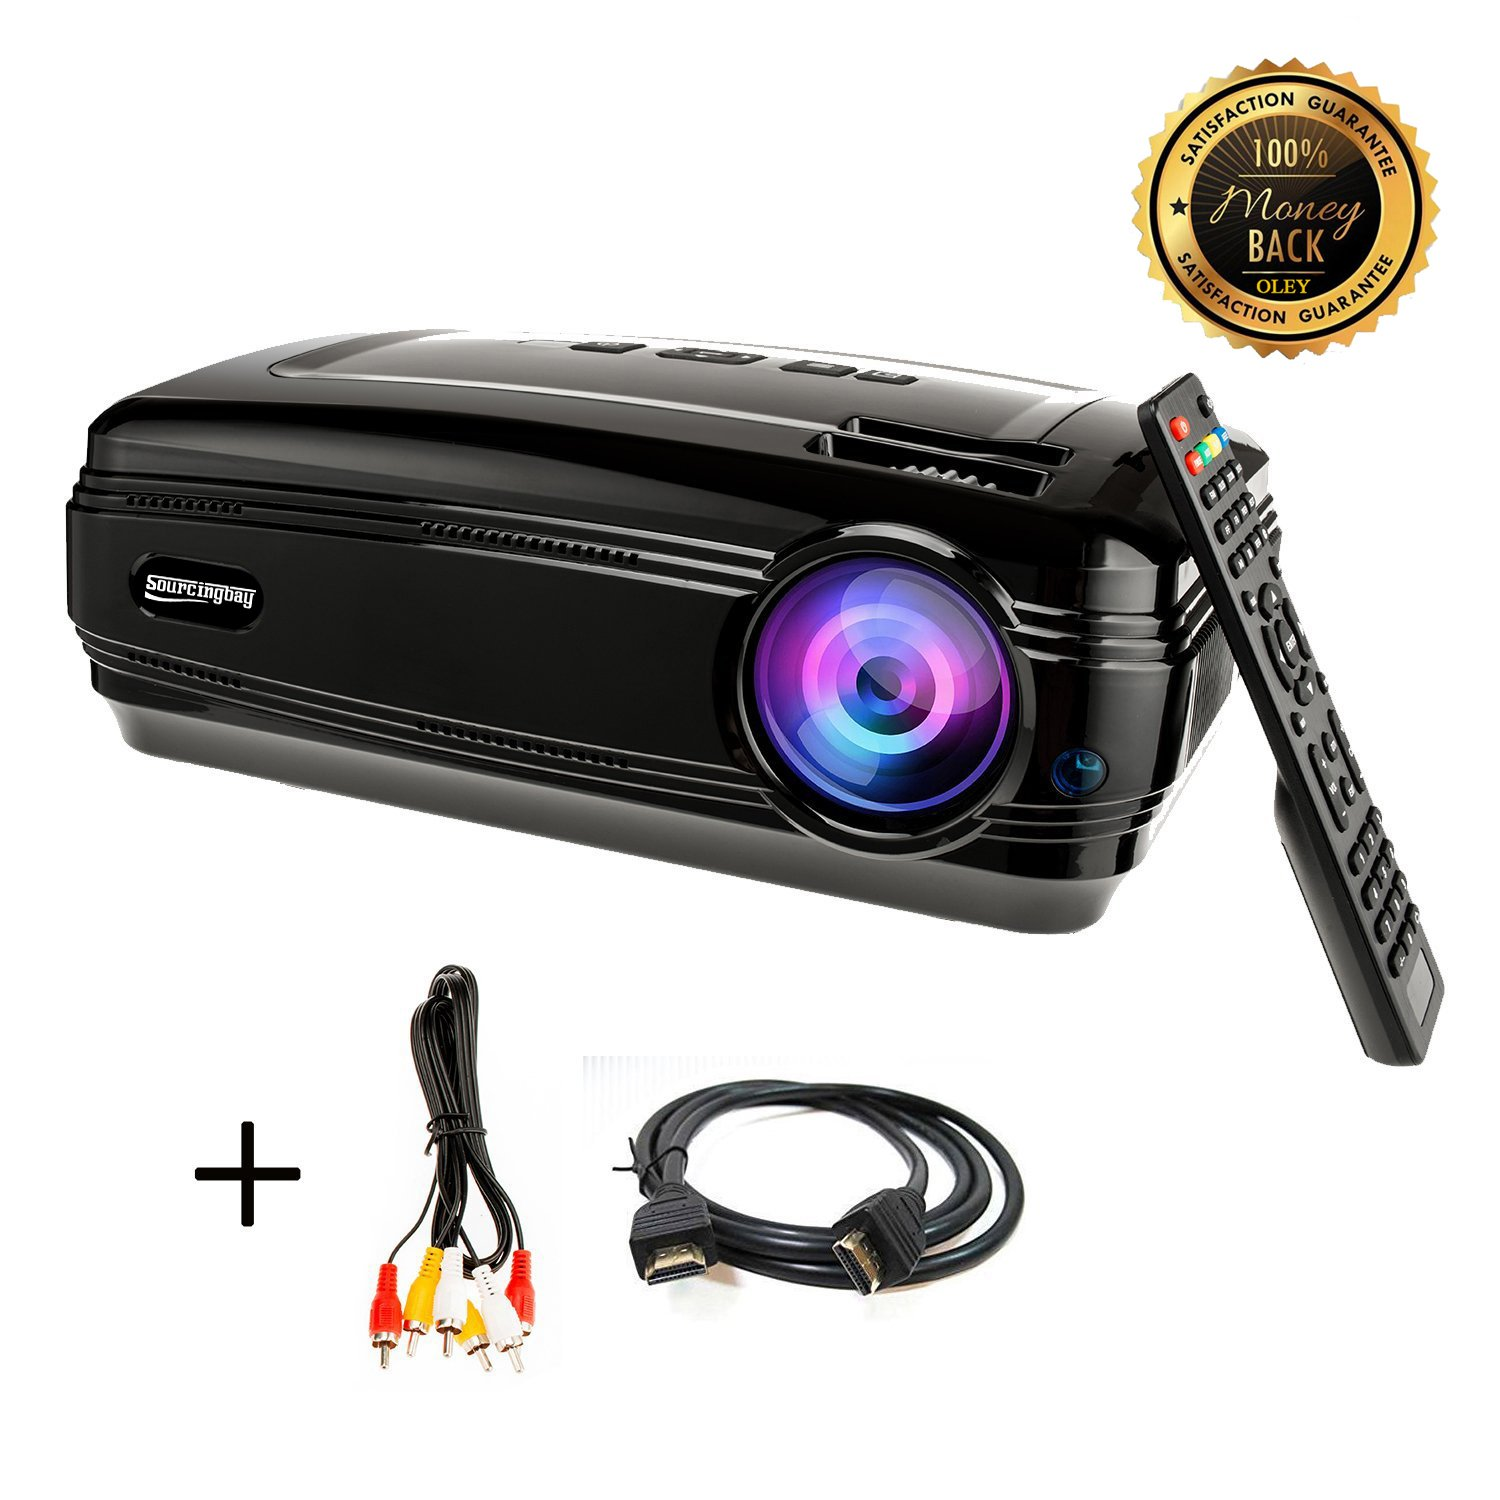 HD projector, Sourcingbay BY58 1080P 3200 Lumens Efficiency LED Video Projectors Multimedia TV Home Cinema Theater Support Xbox VGA USB Speaker HDMI for Outdoor Movie Night,Laptop Smartphone Box by OLEY